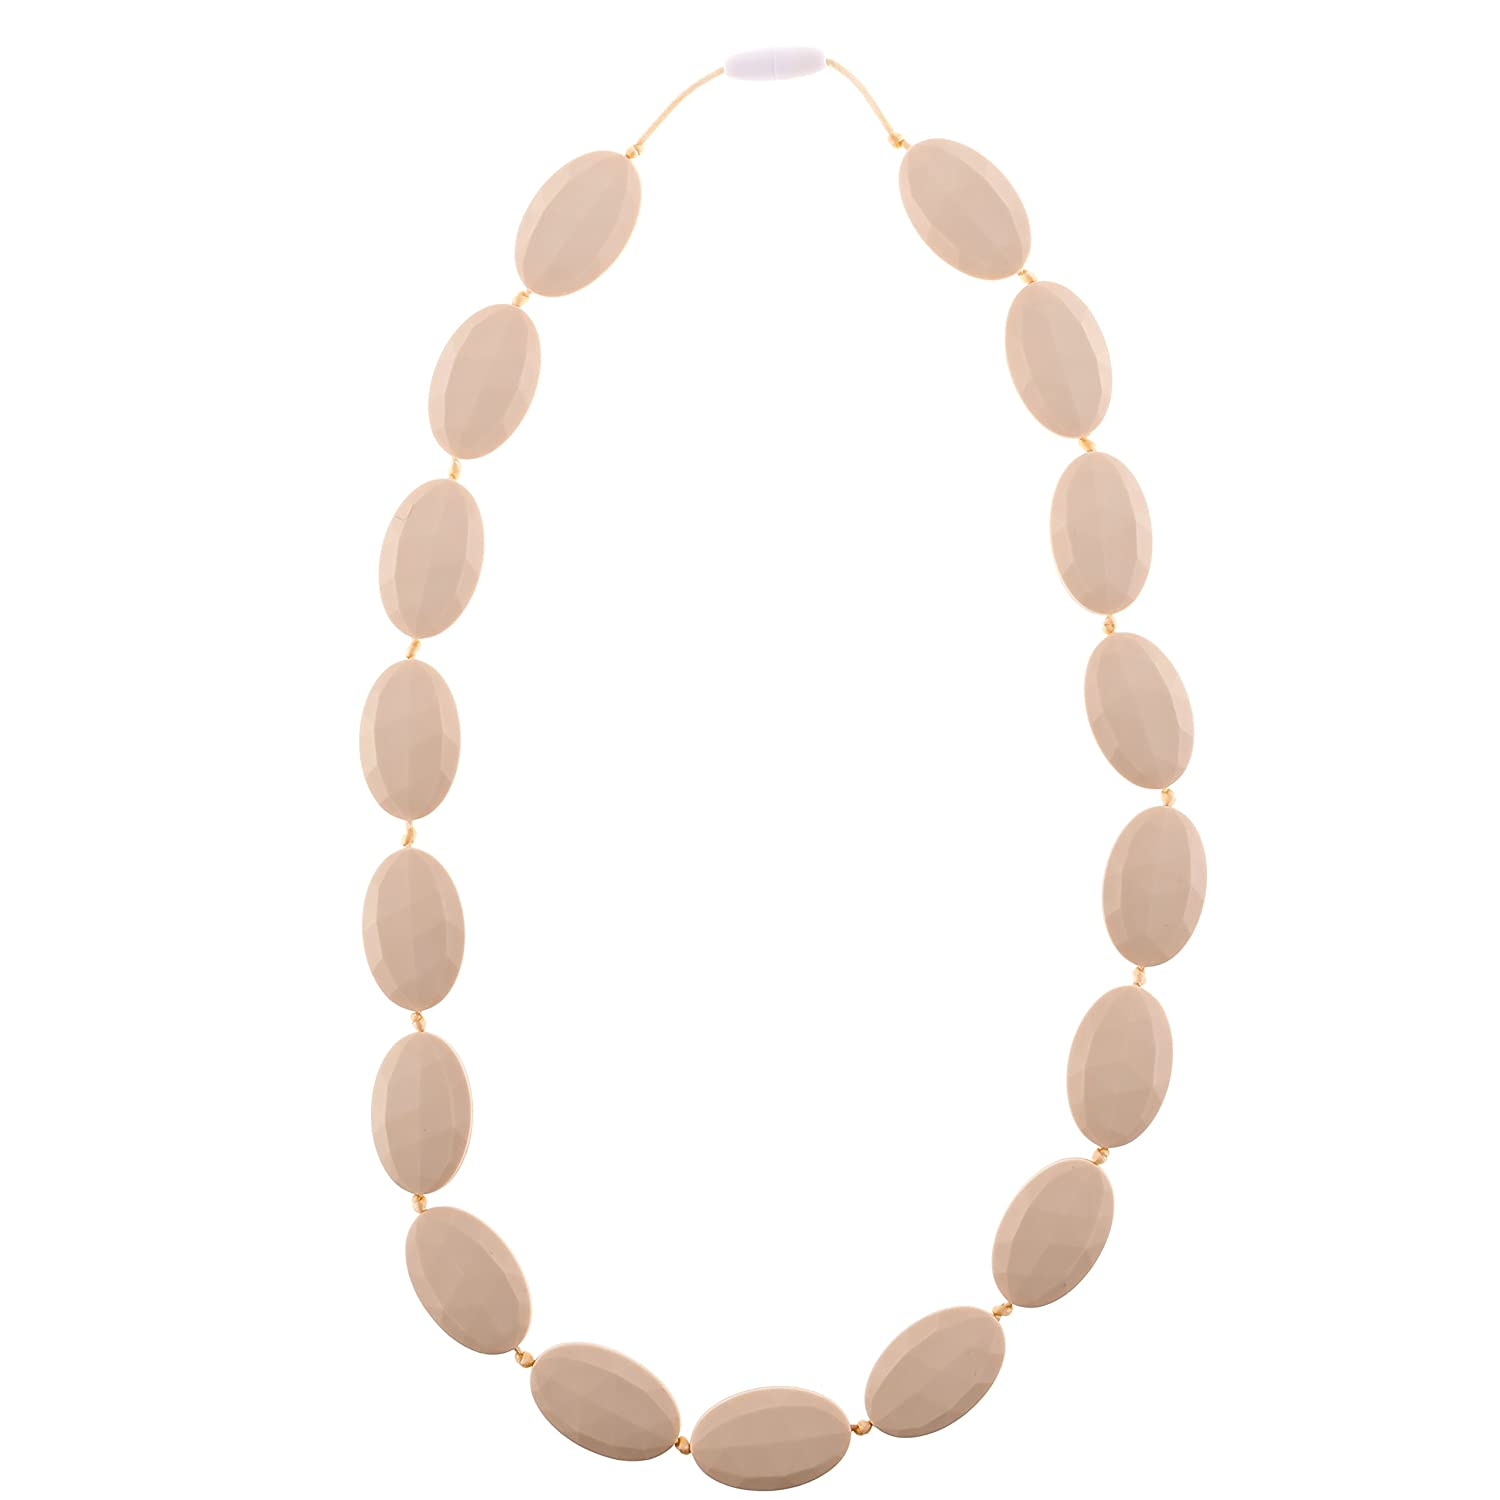 Chew-Choos - 'Pat-a-Cake' Silicone Teething Necklace - Modern Chic Baby Teether (Navajo White) by Chew-Choos   B00TKTVT4S